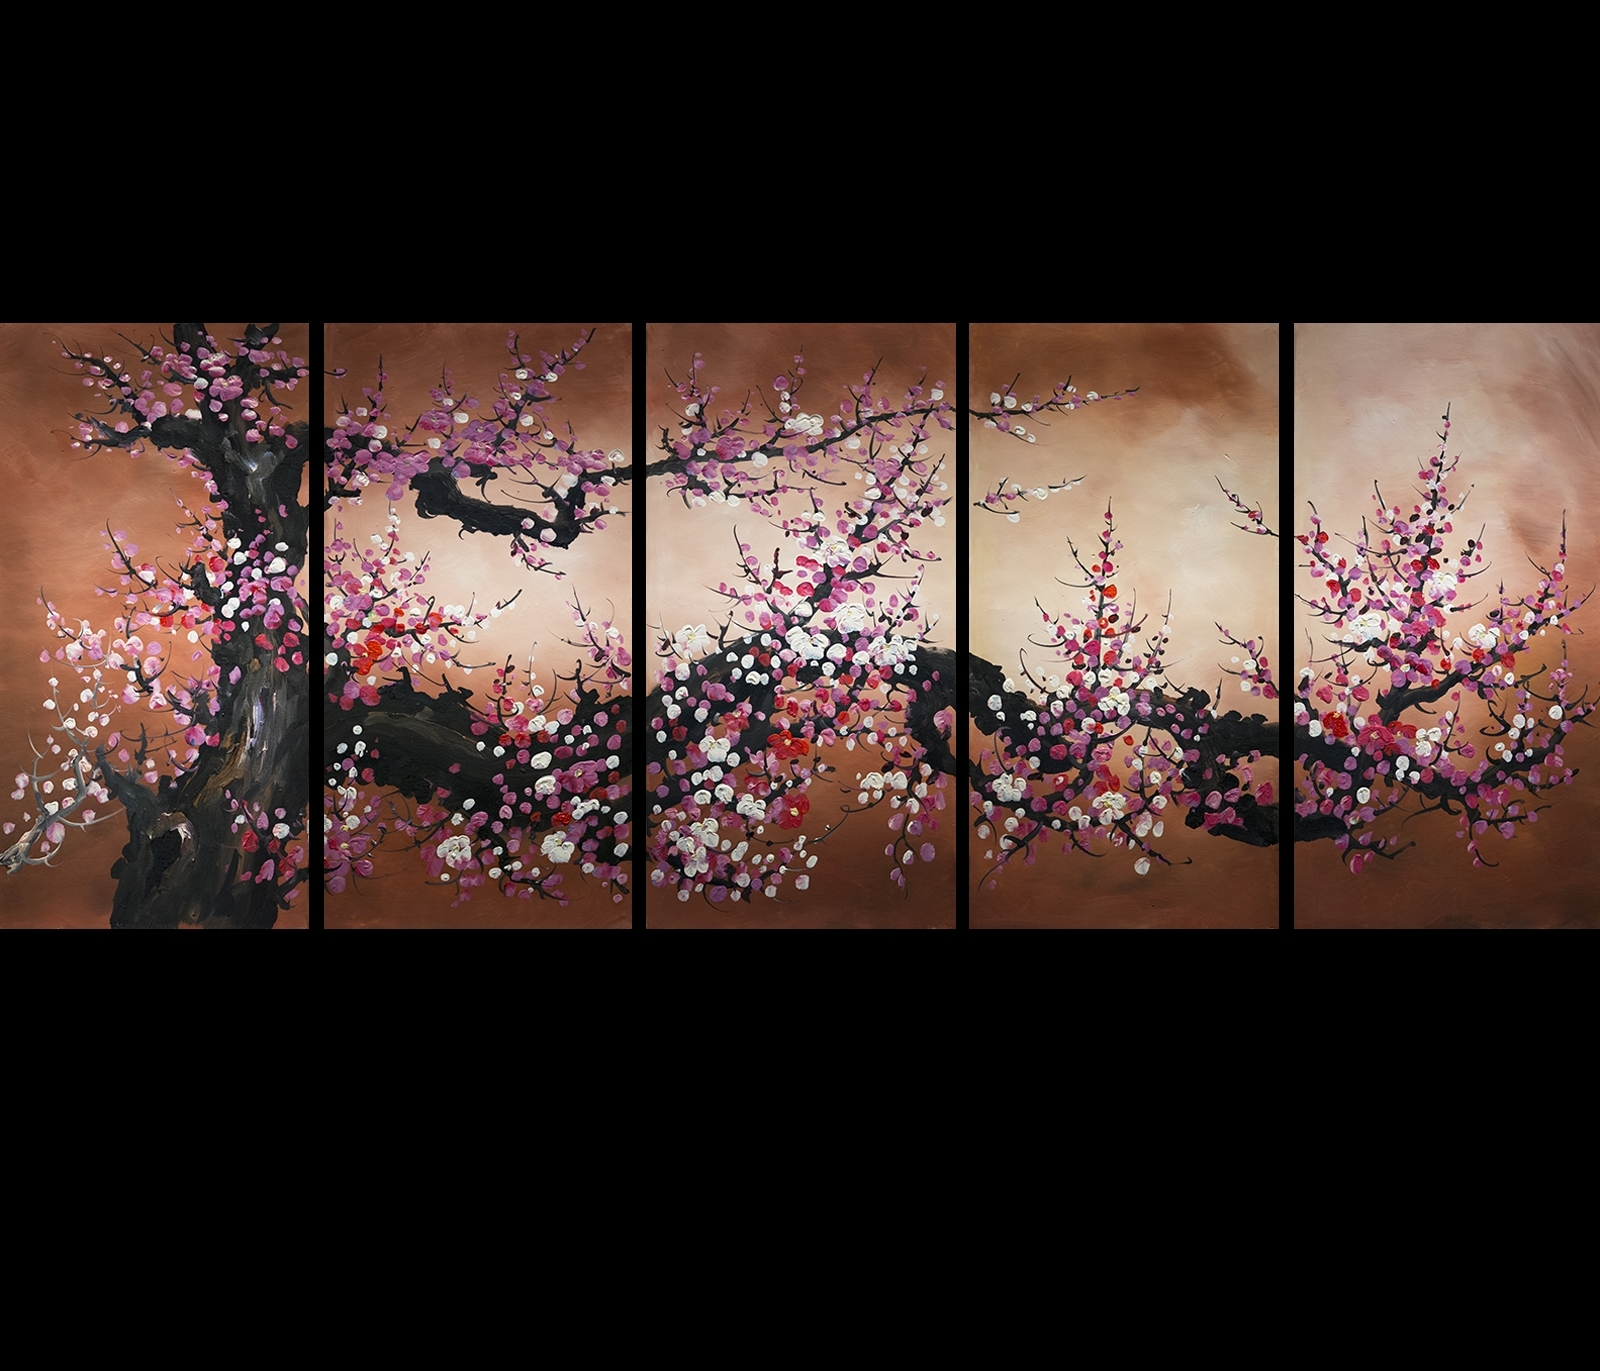 Chinese Feng Shui Painting Cherry Blossom Painting Flower Painting Regarding Recent Cherry Blossom Oil Painting Modern Abstract Wall Art (View 6 of 15)